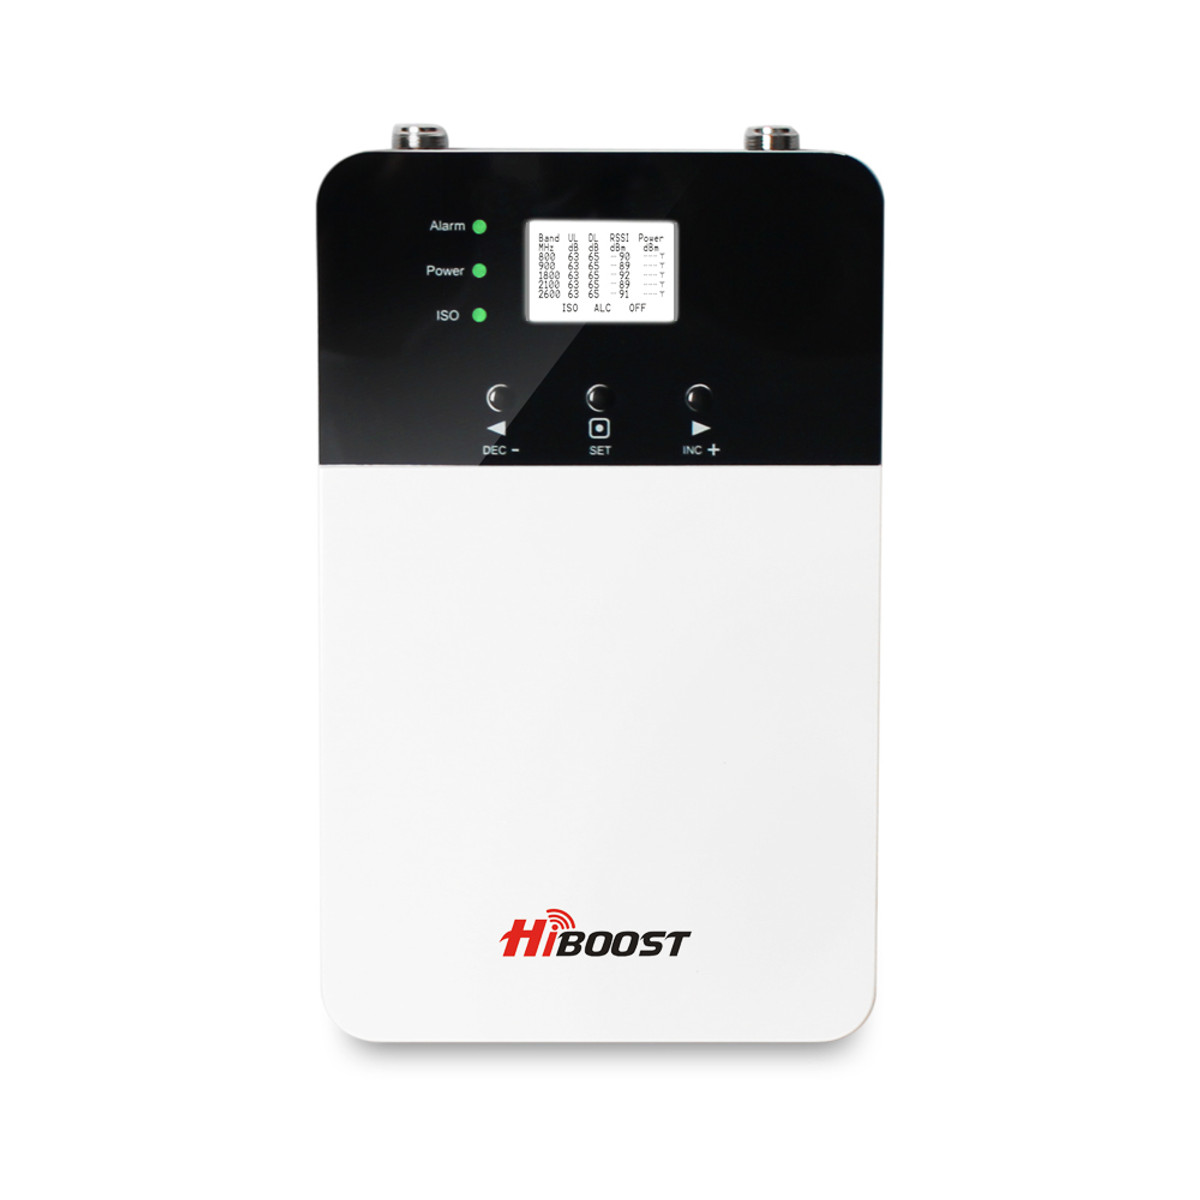 HiBoost Home 10K Plus Cell Phone Signal Booster Kit